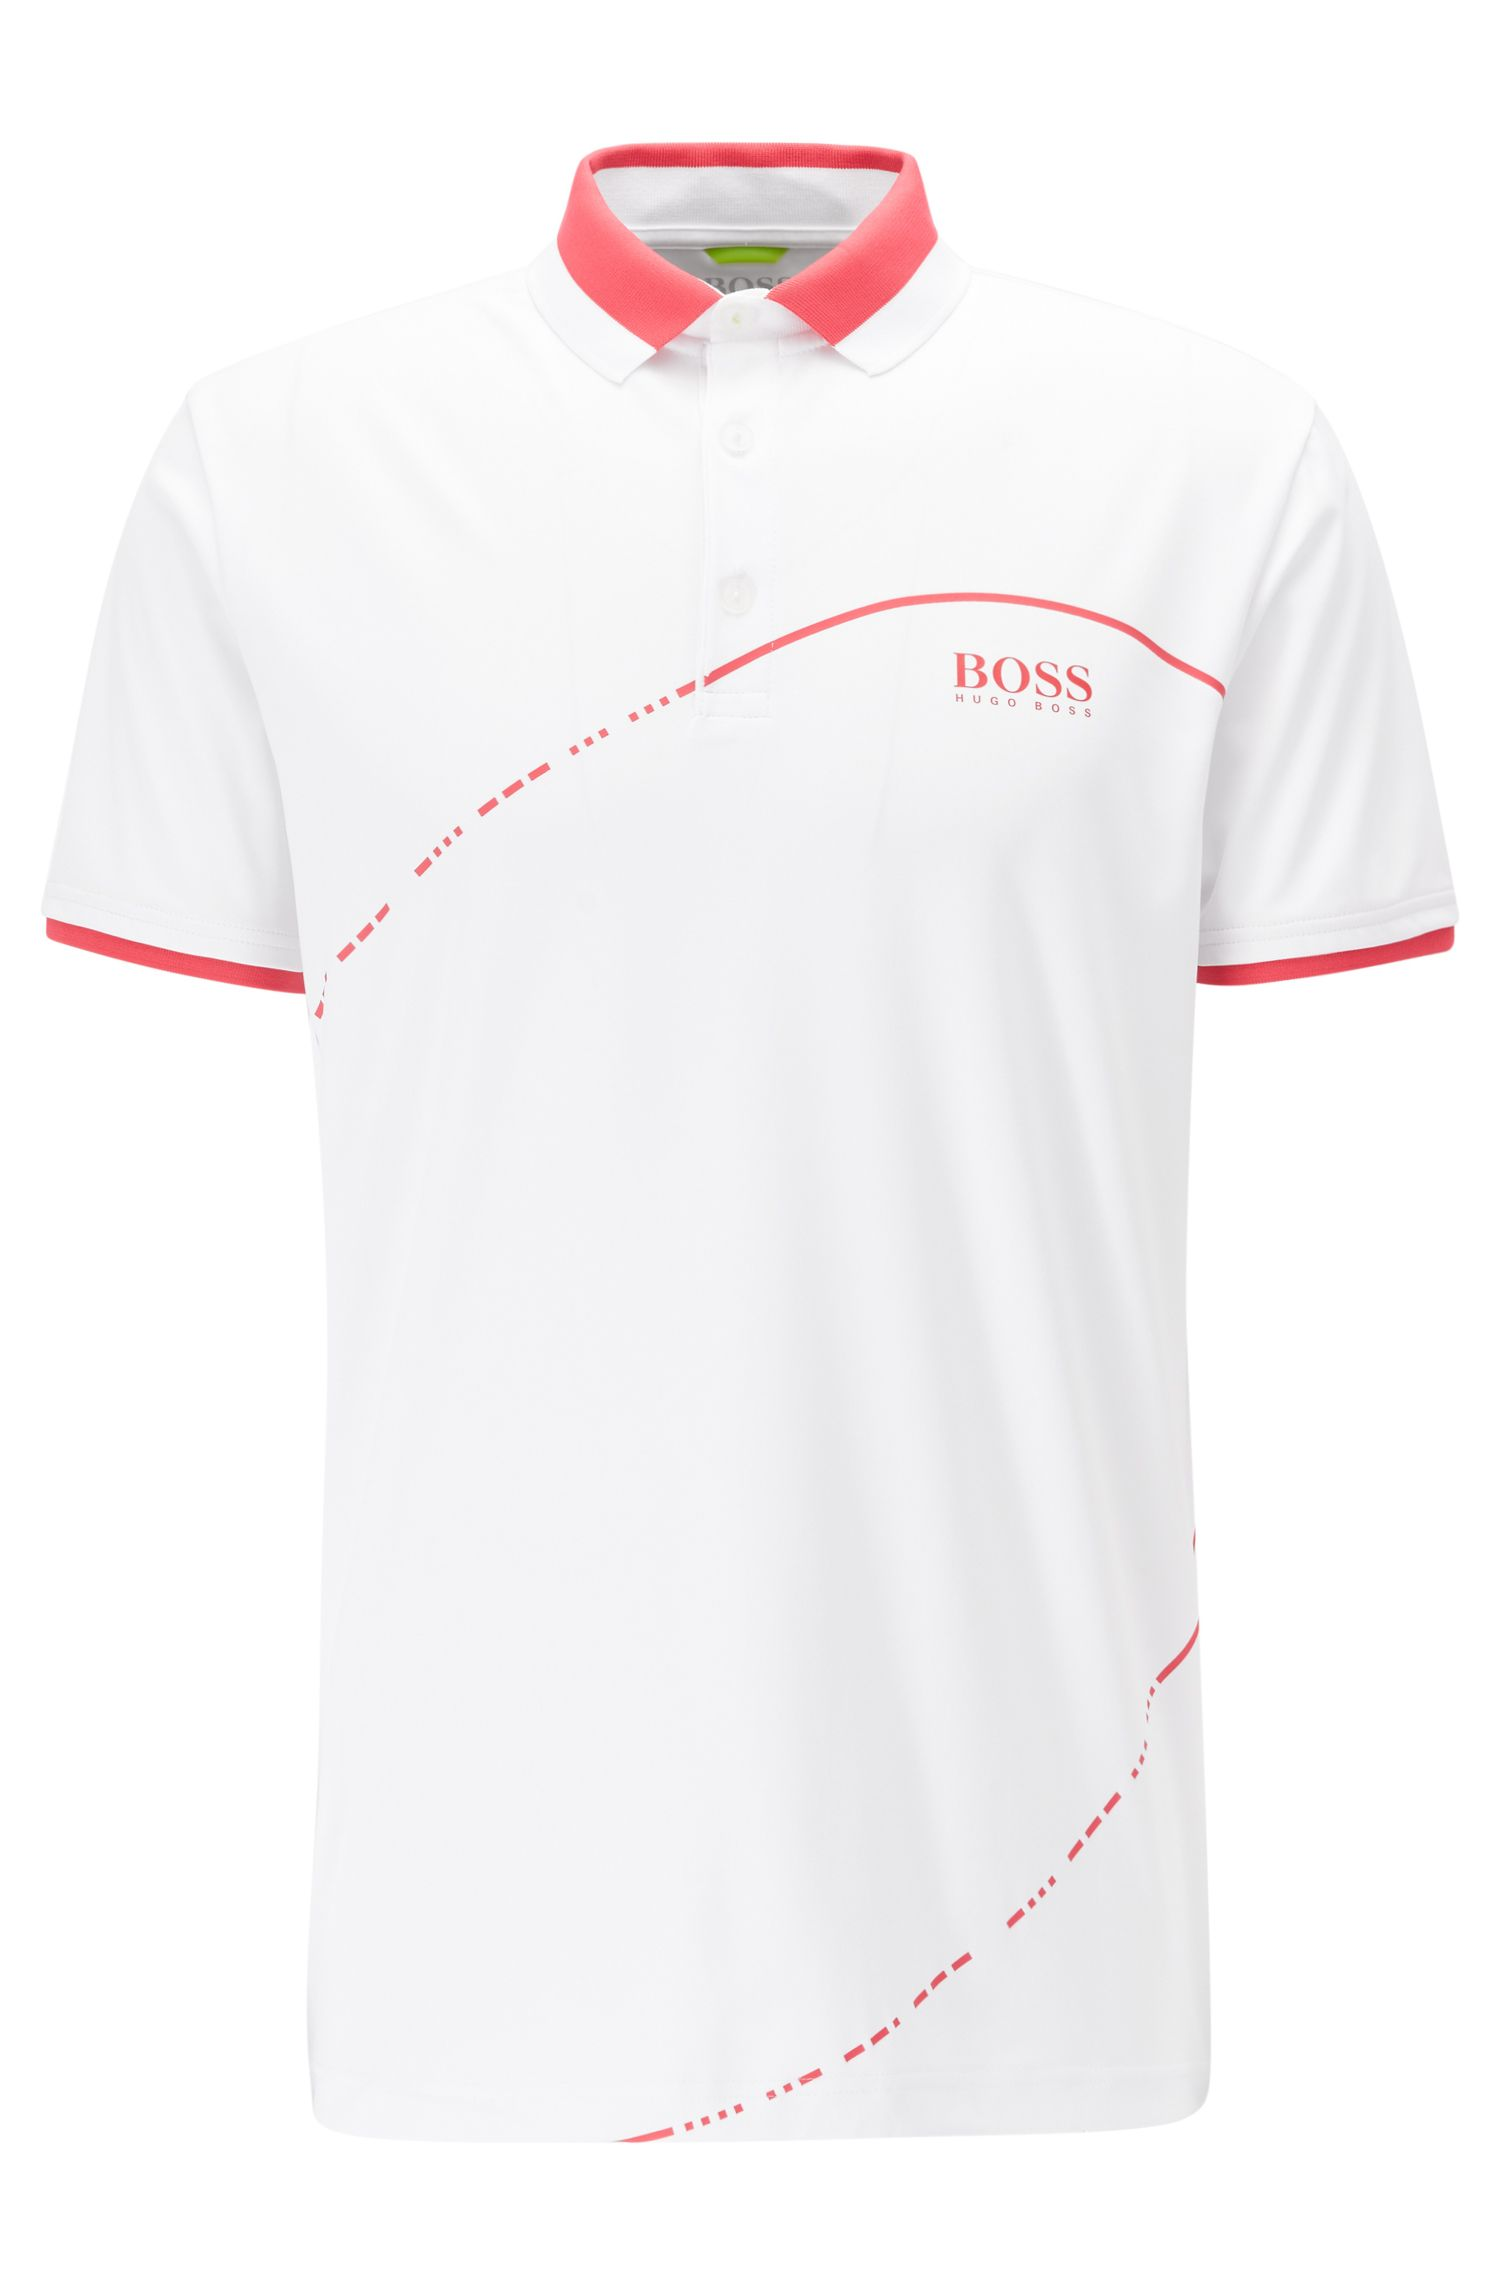 Cotton Blend Polo Shirt, Regular Fit | Stre